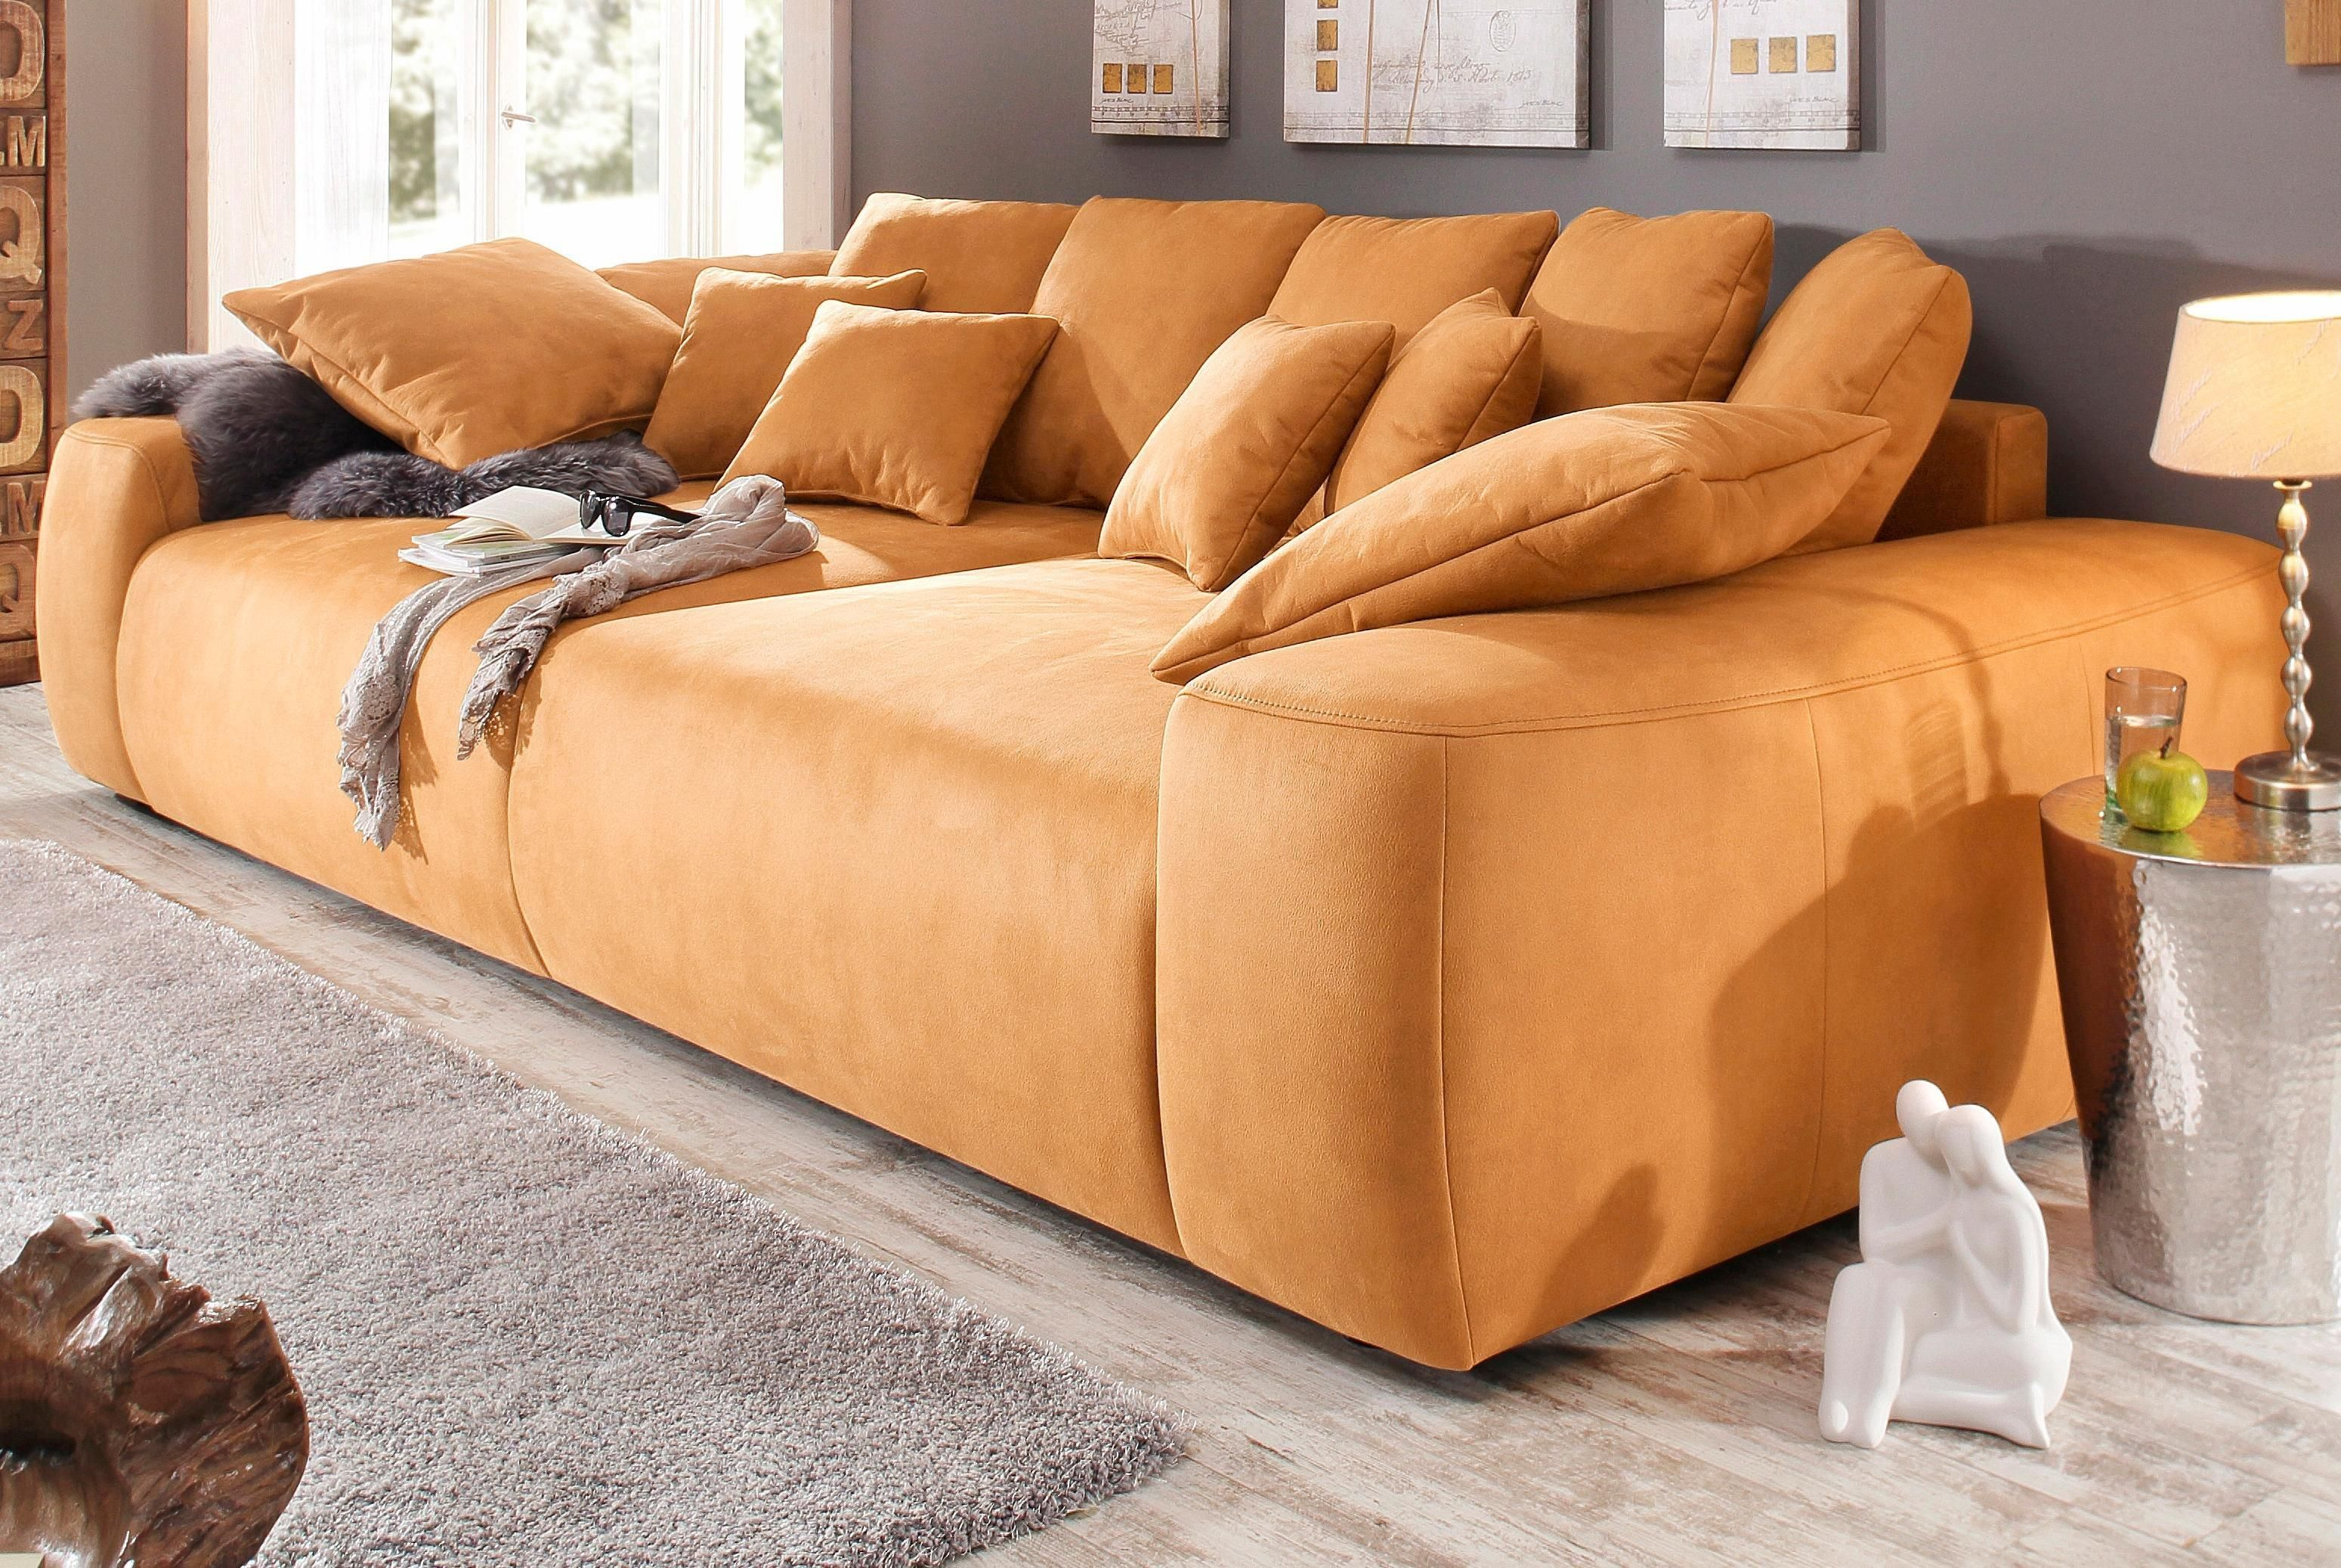 Ecksofa Jelmoli Home Affaire Big Sofa In 2019 Sofa Couch How To Style Big